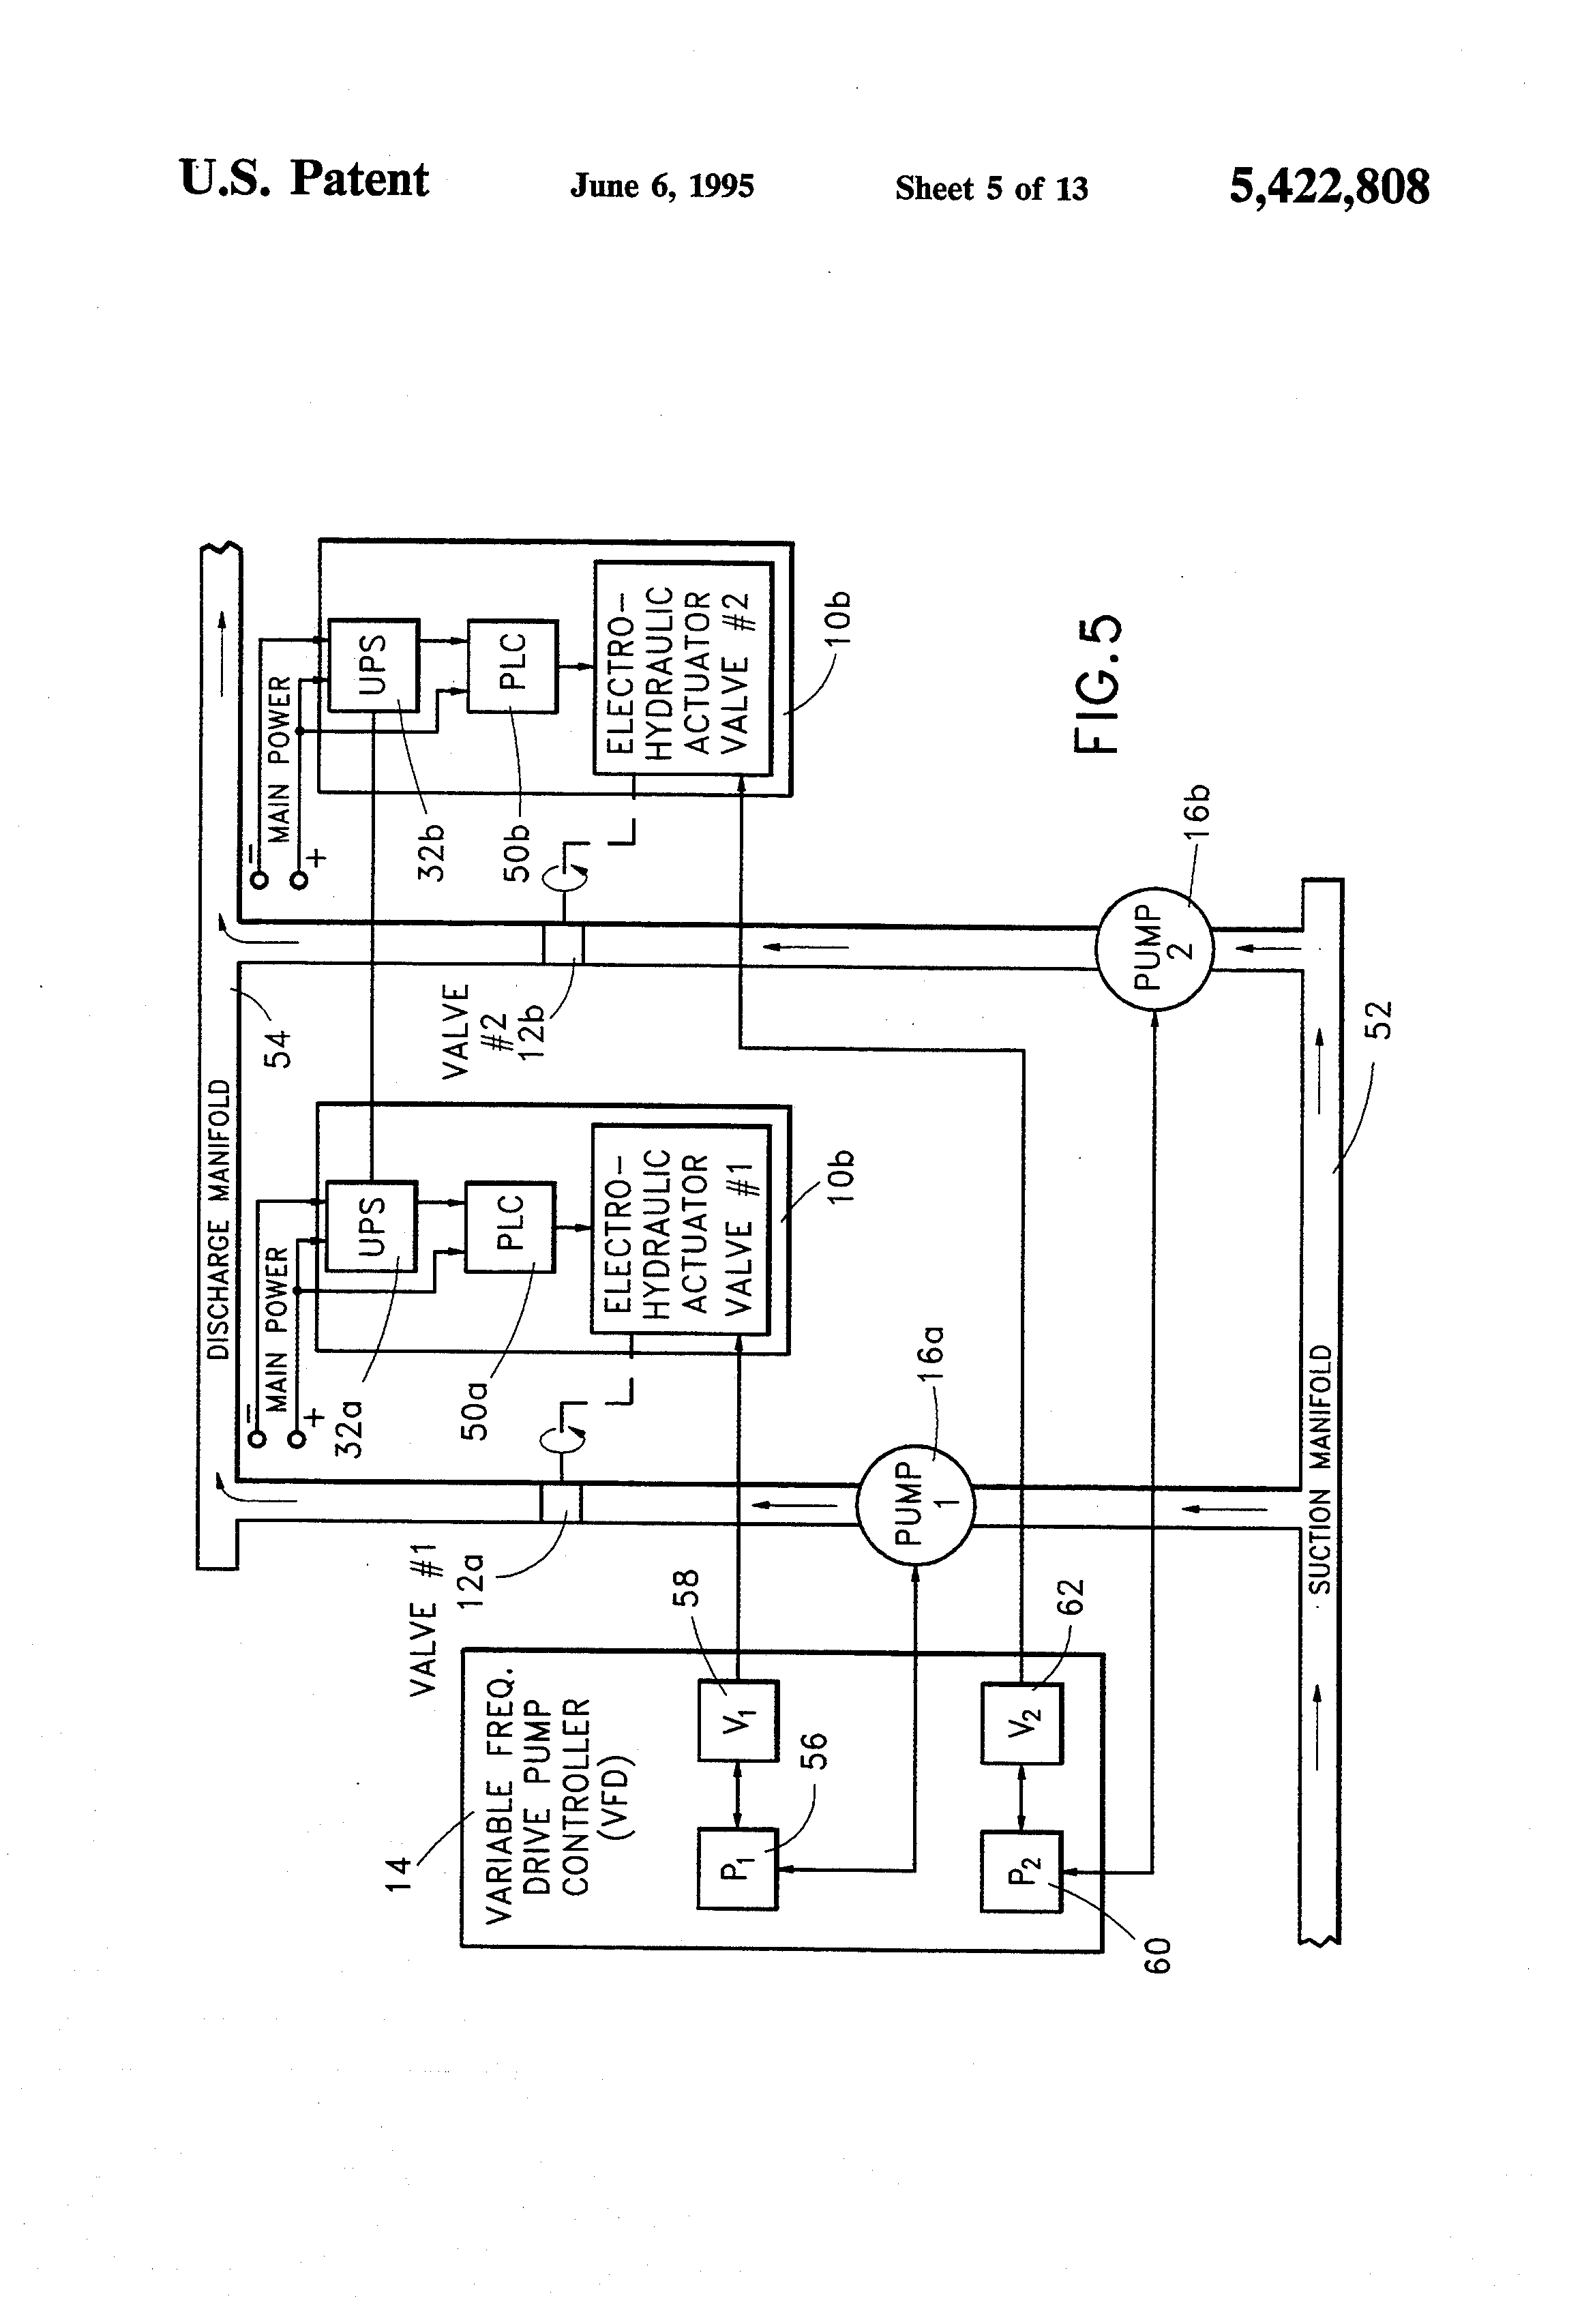 US5422808 5 mov wiring diagram auma mov wiring diagram \u2022 wiring diagrams j rotork actuator wiring diagram at bayanpartner.co